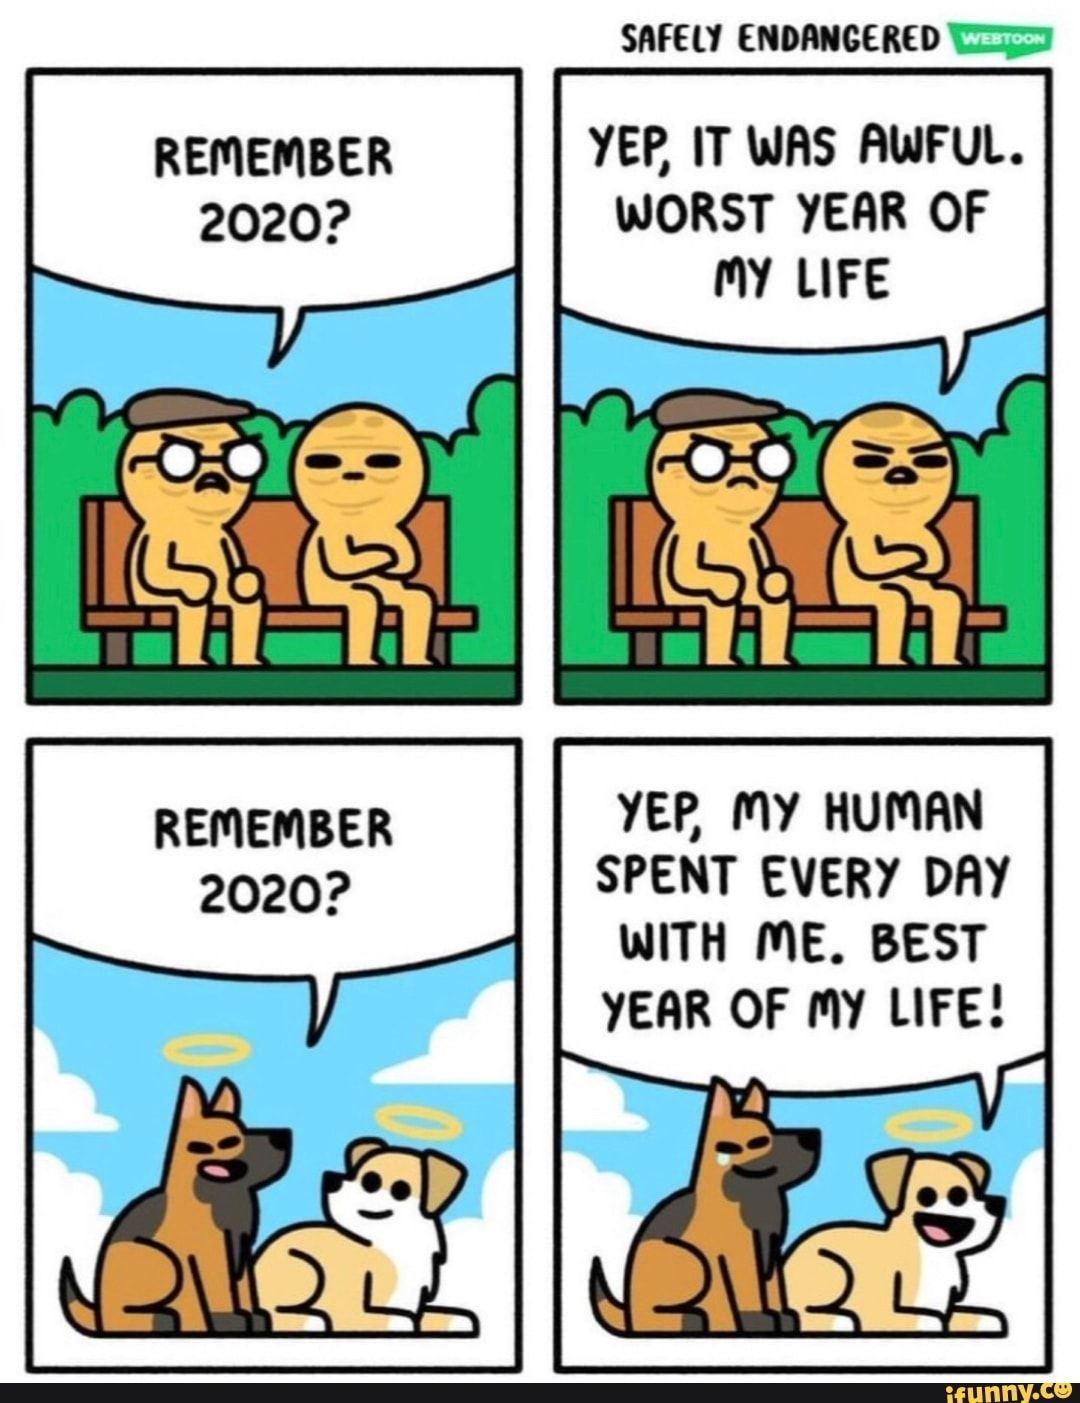 Safely Endangered Remember Yep It Was Awful 2020 Worst Year Of My Life Remember Yer My Human 2020 Spent Every Day With Me Best Year Of My Life Ifunny In